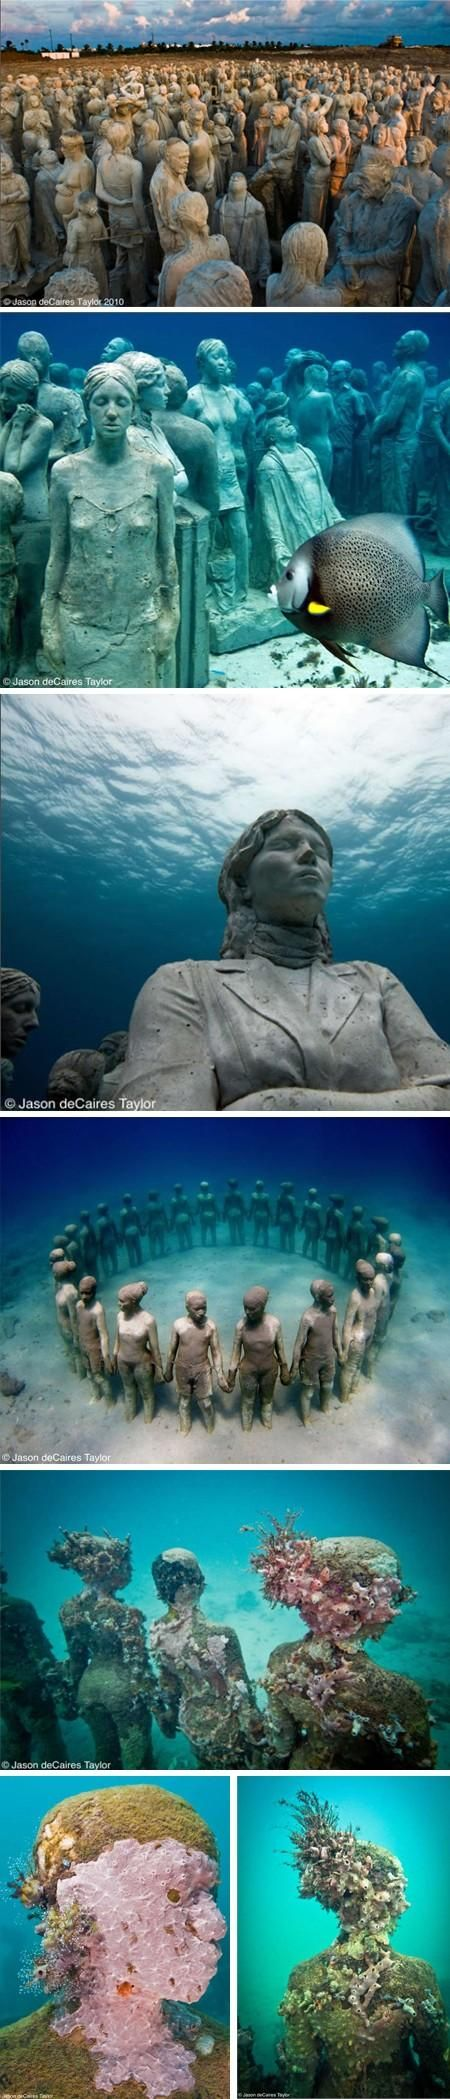 """Jason de Caires Taylor's underwater sculpture garden in Cancun. Constructed out of concrete and steel, and bolted to the ocean substrate, the works here act as artificial reefs that provide """"an ideal habitat for filter feeding organisms.""""  http://www.dedeceblog.com/2010/10/13/cancun/"""